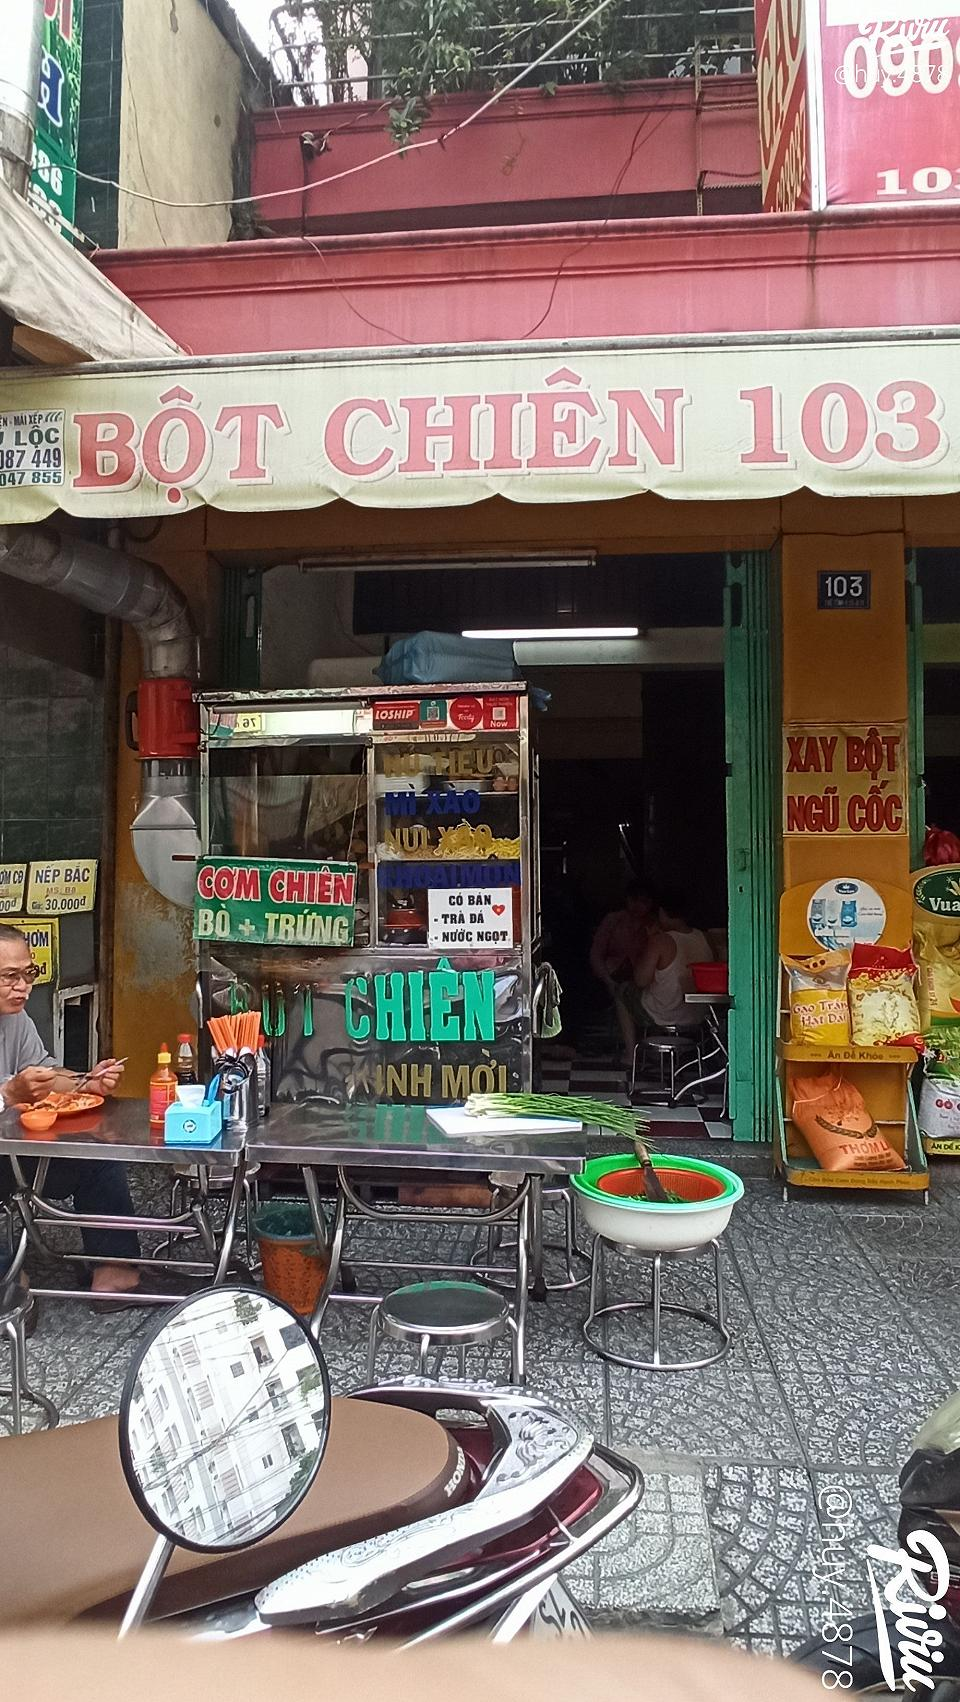 "quan "" bot chien 103 ""  - anh 5"